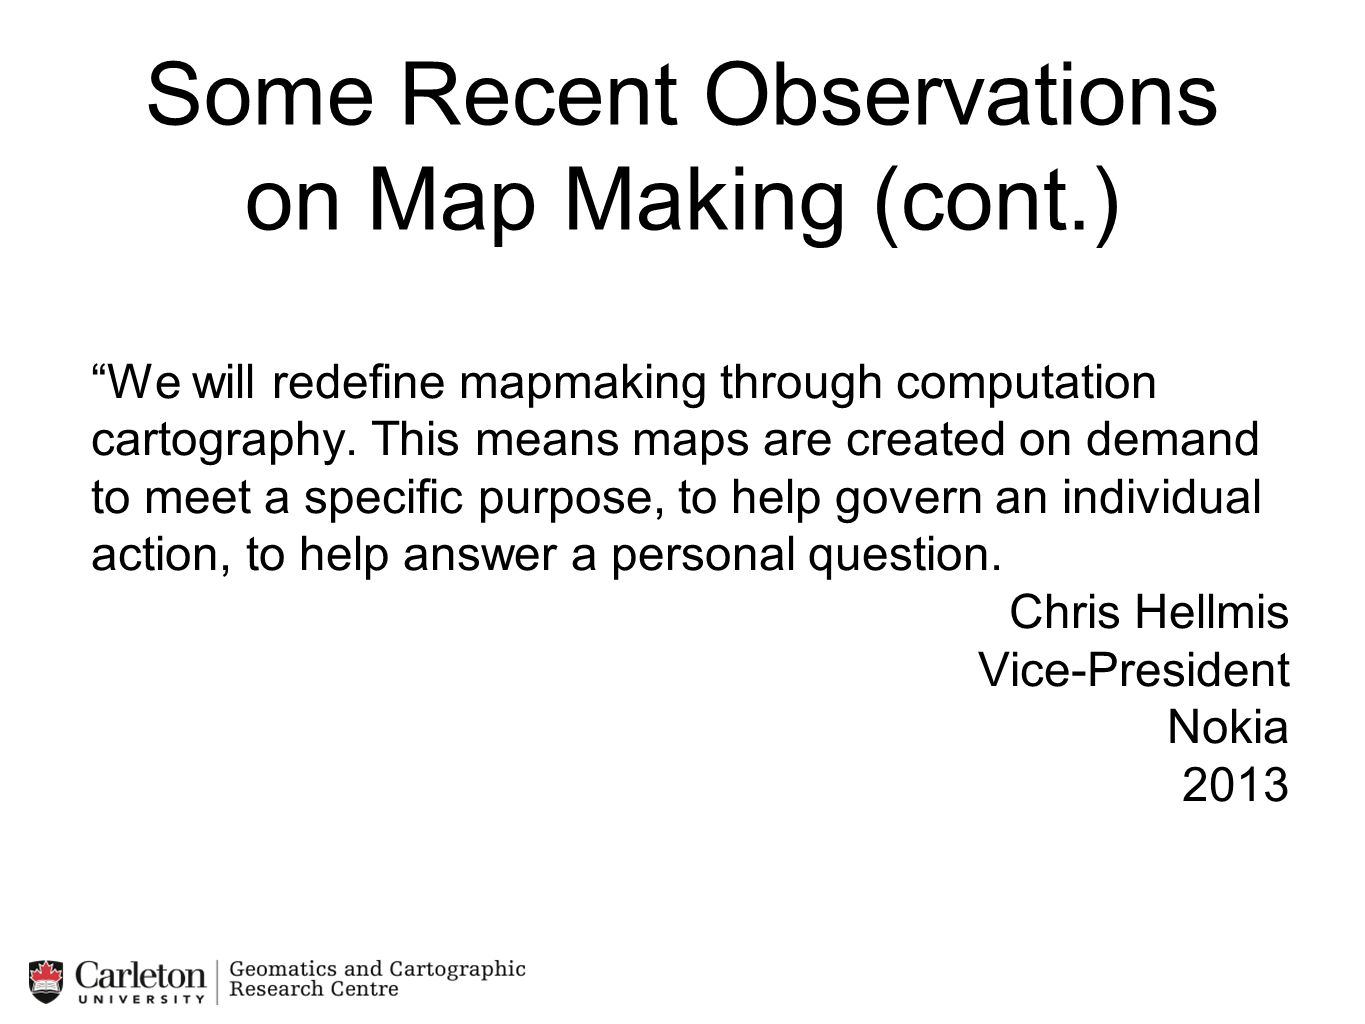 Some Recent Observations on Map Making (cont.)